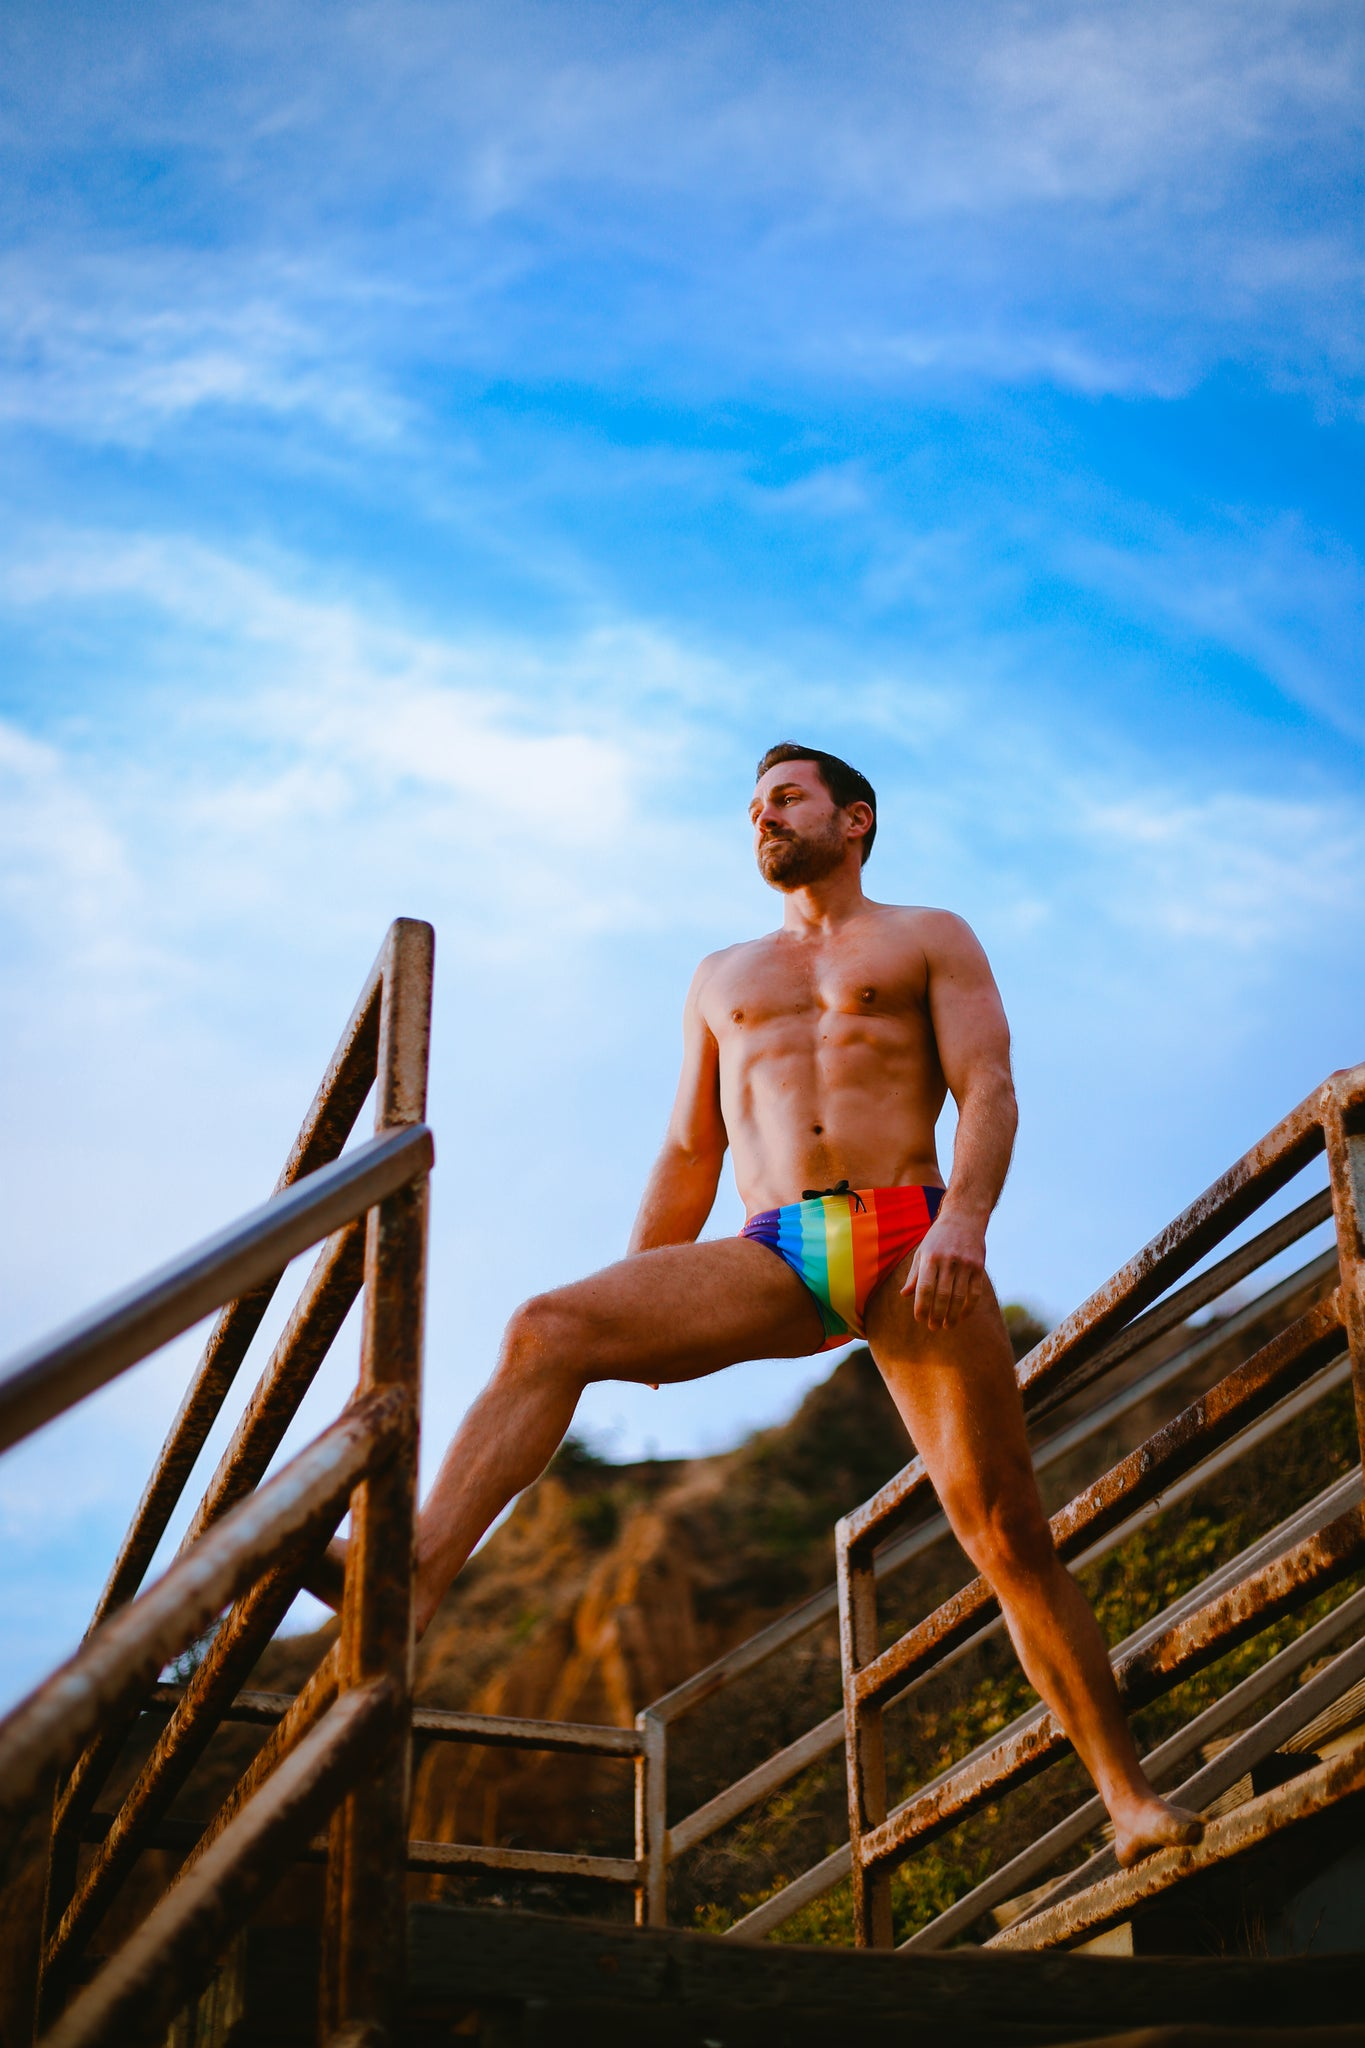 Rainbow Swimwear for Pride 2020 by Smithers Mens Swimwear